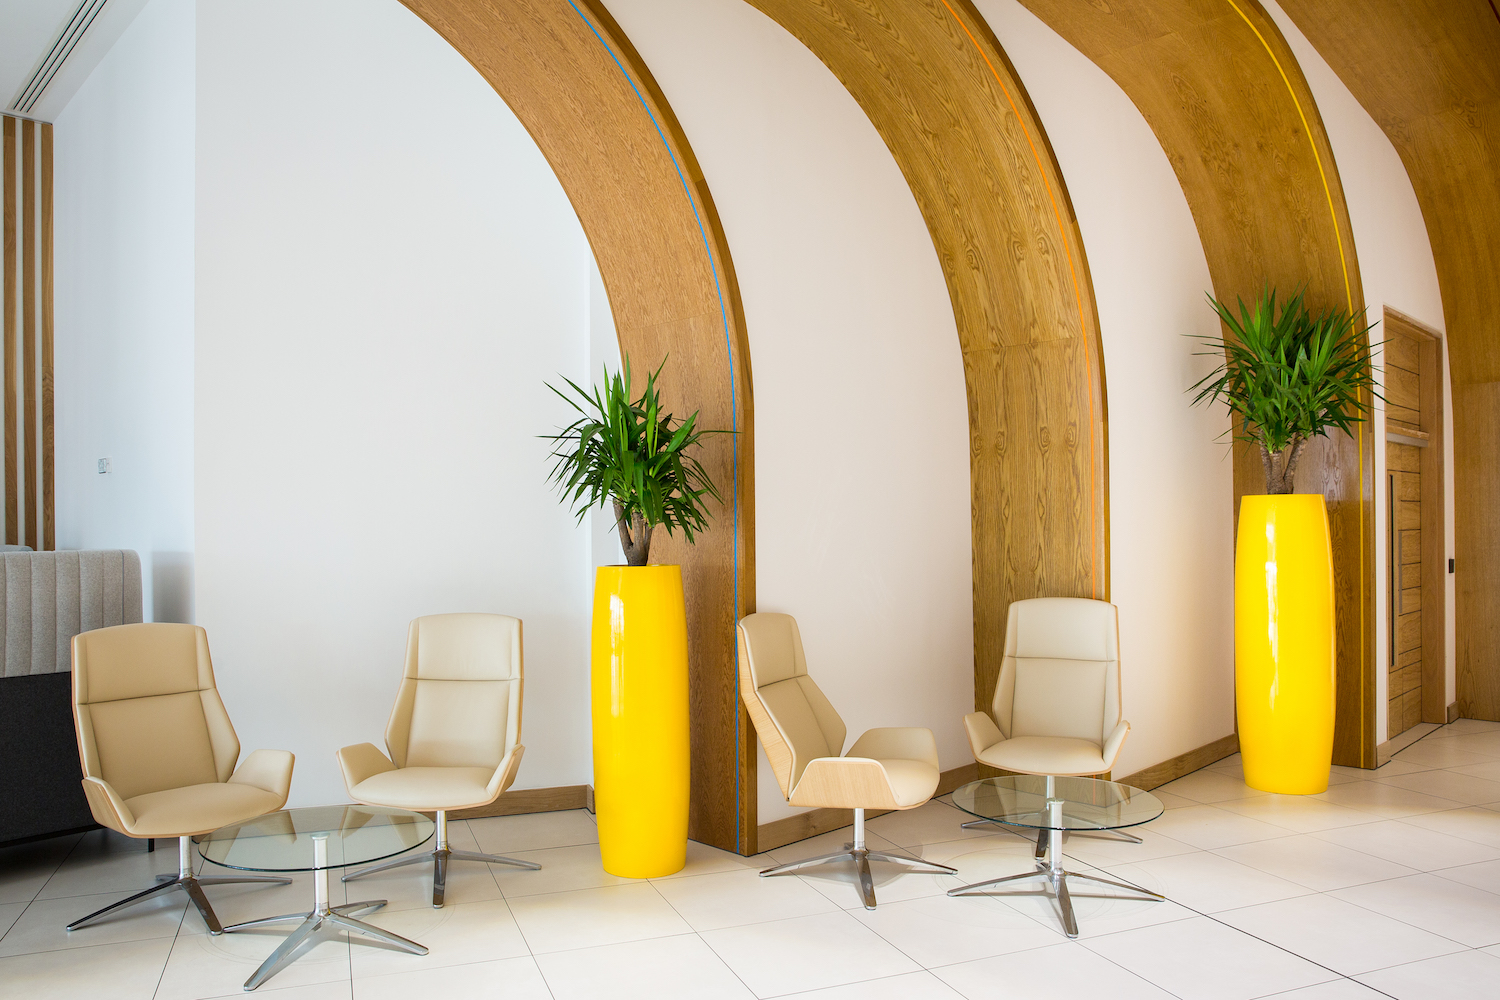 interior-plants-plantcare-bristol-cardiff-interiorscapes-eco-friendly-corporate-office-1